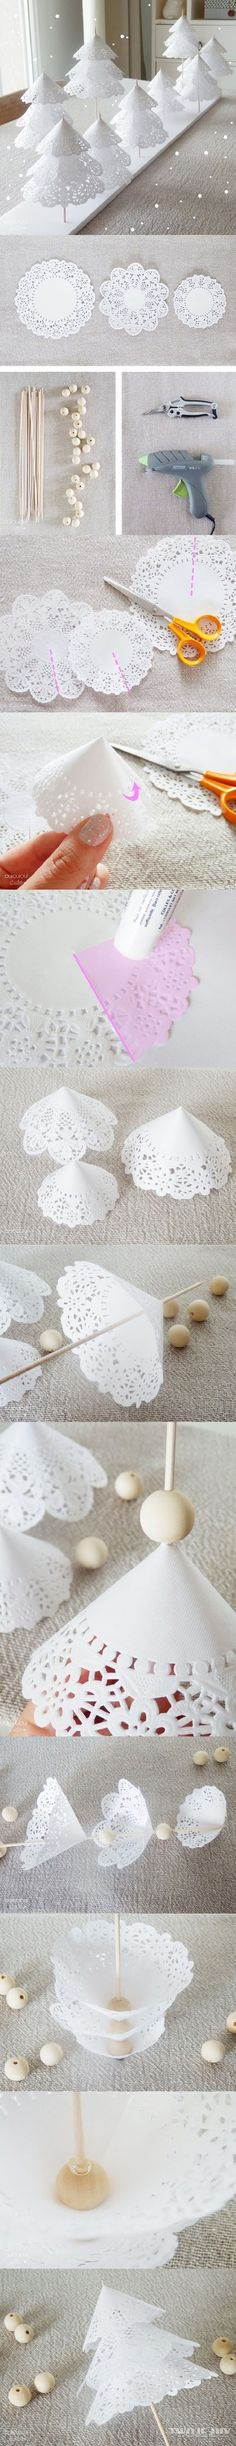 How to Make Tissue Paper Pom-Poms